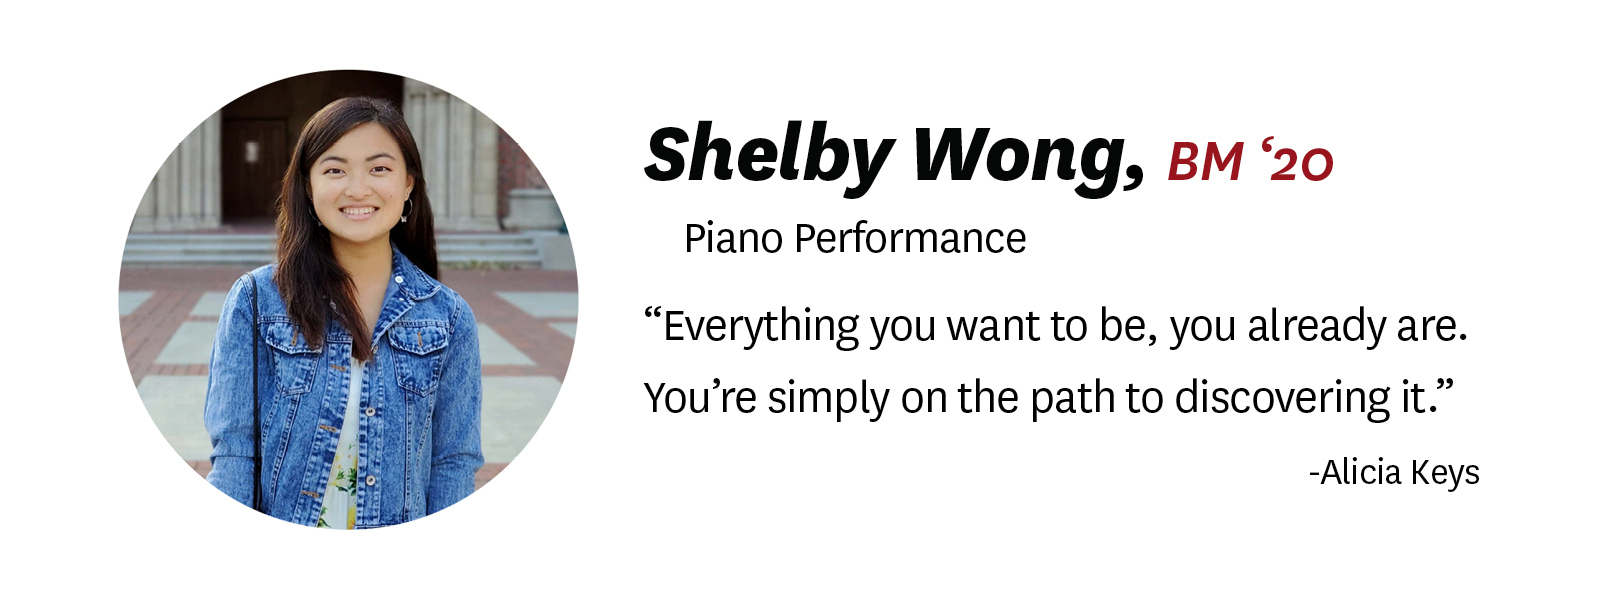 "Photo of Shelby Wong with her name and ""senior quote"": ""Shelby Wong, BM '20, Piano Performance. Quote: ""Everything you want to be, you already are. You're simply on the path to discovering it."" by Alicia Keys"